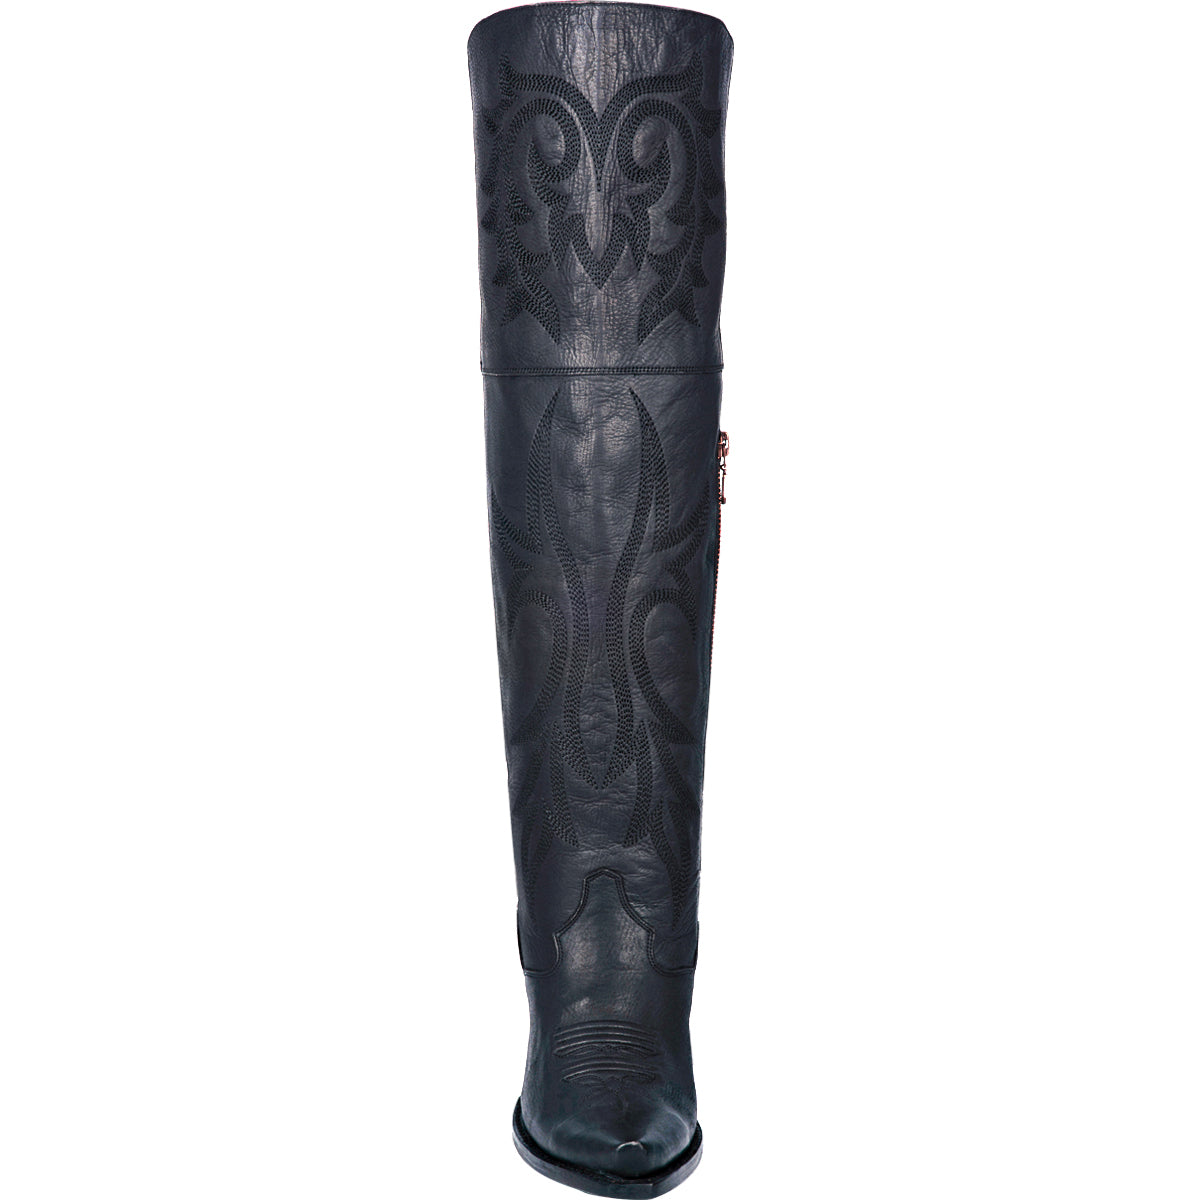 JILTED LEATHER BOOT 13239864131626